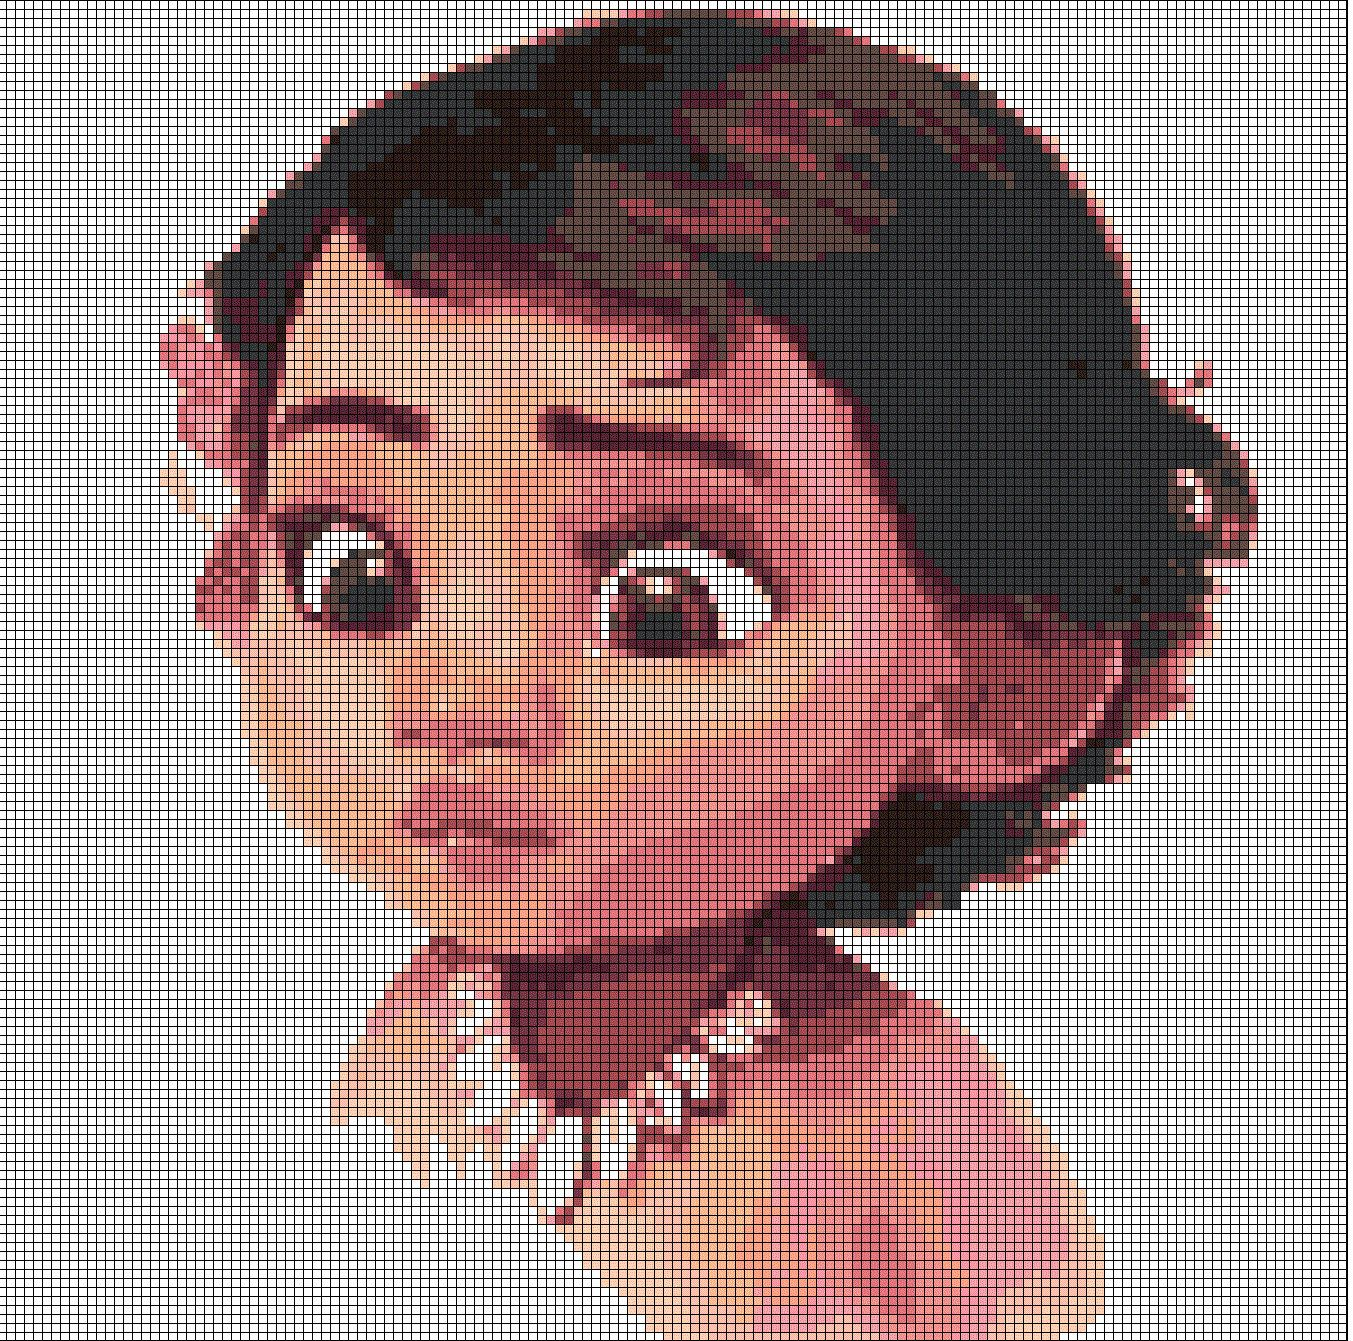 Little Moana Disney princess cross stitch pattern in pdf by ...